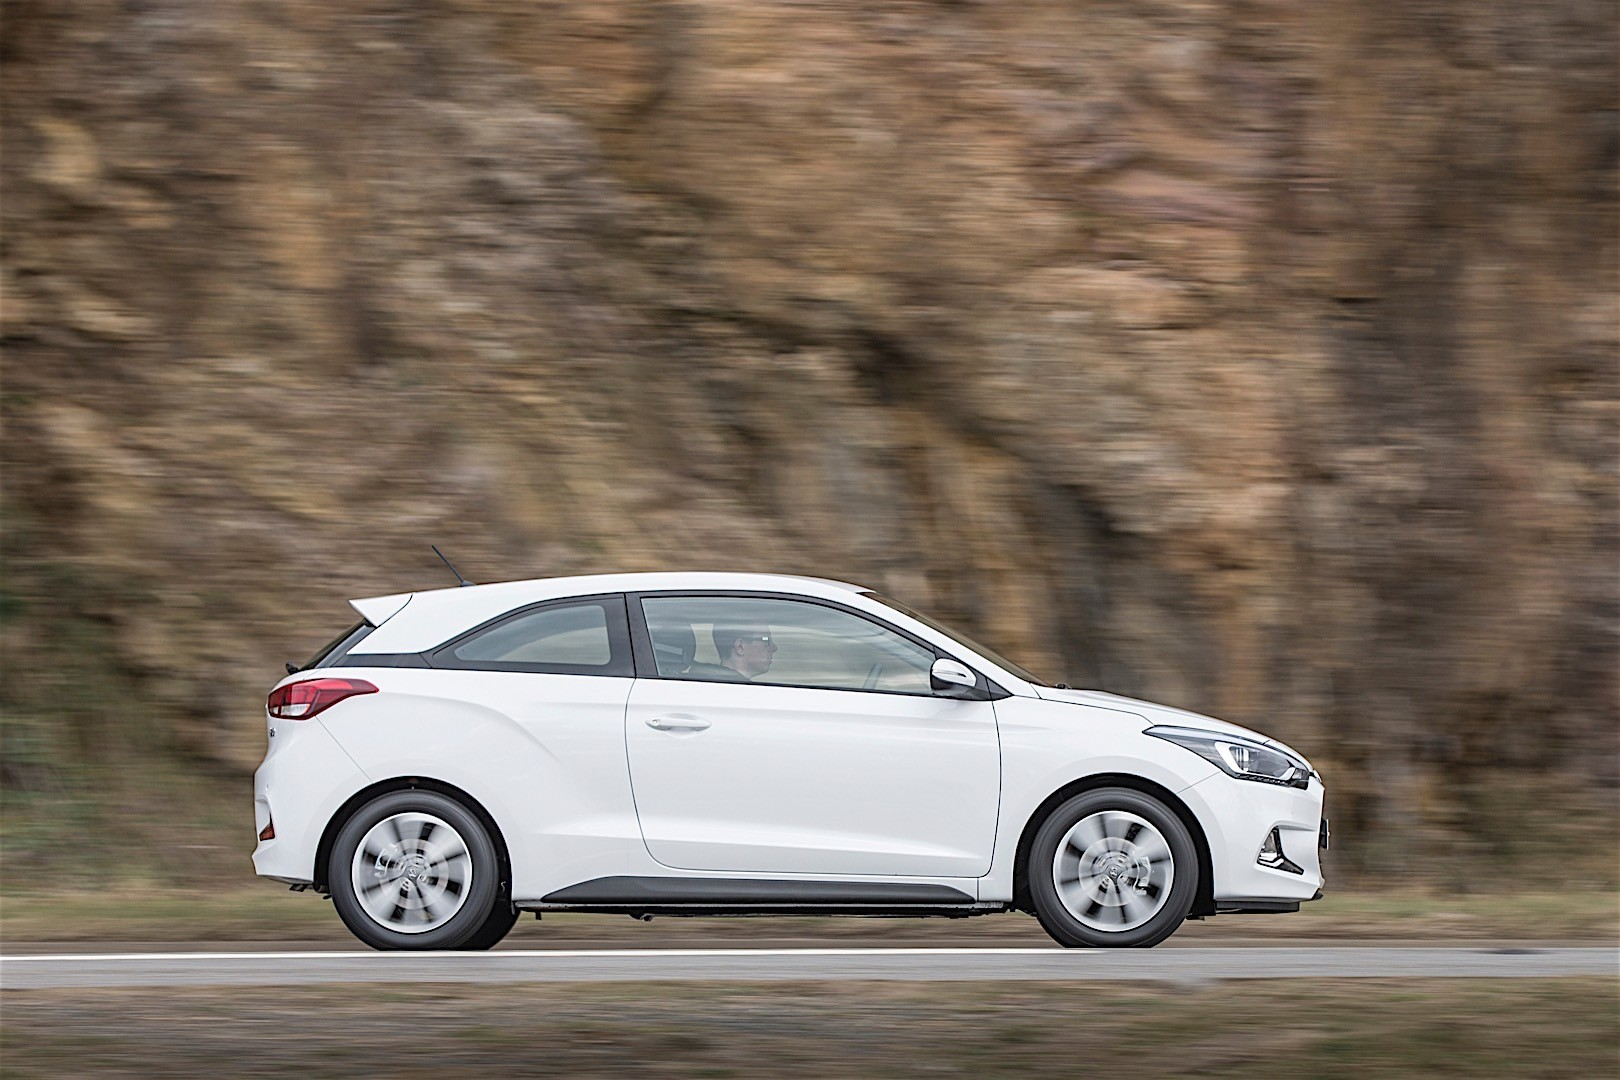 hyundai i20 coupe specs 2015 2016 2017 2018. Black Bedroom Furniture Sets. Home Design Ideas